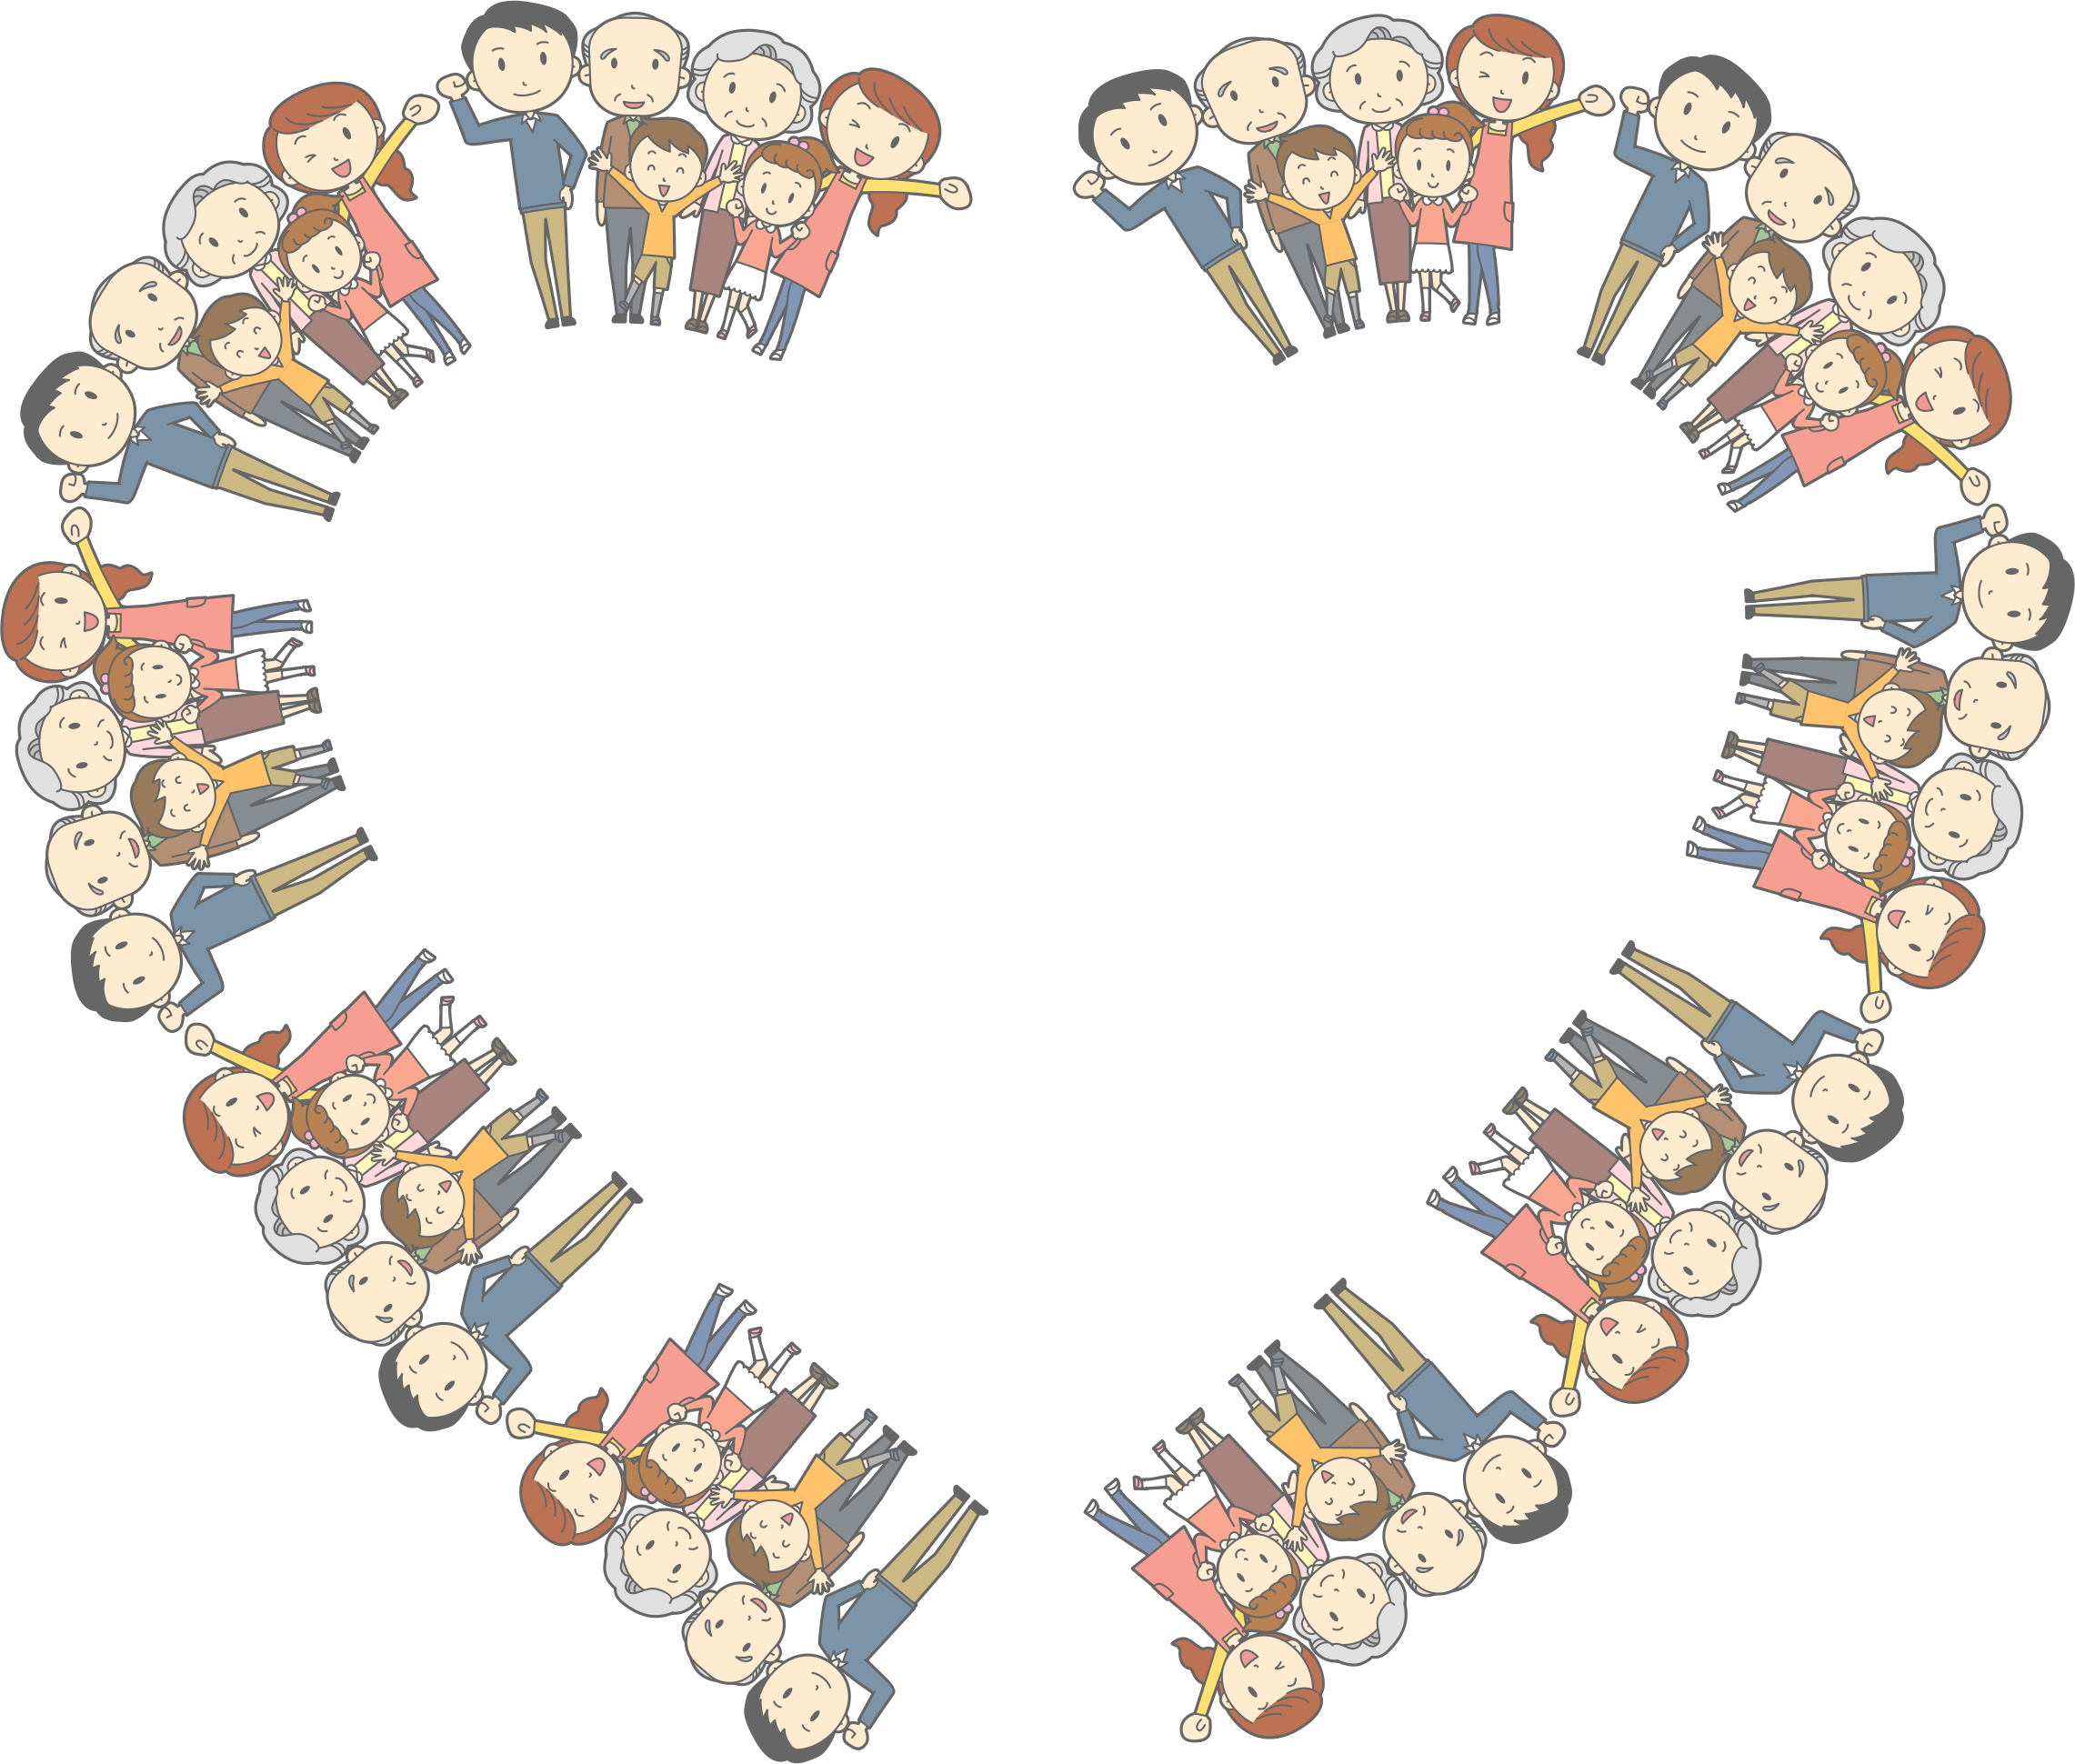 Families clipart frame. Multigenerational family heart big